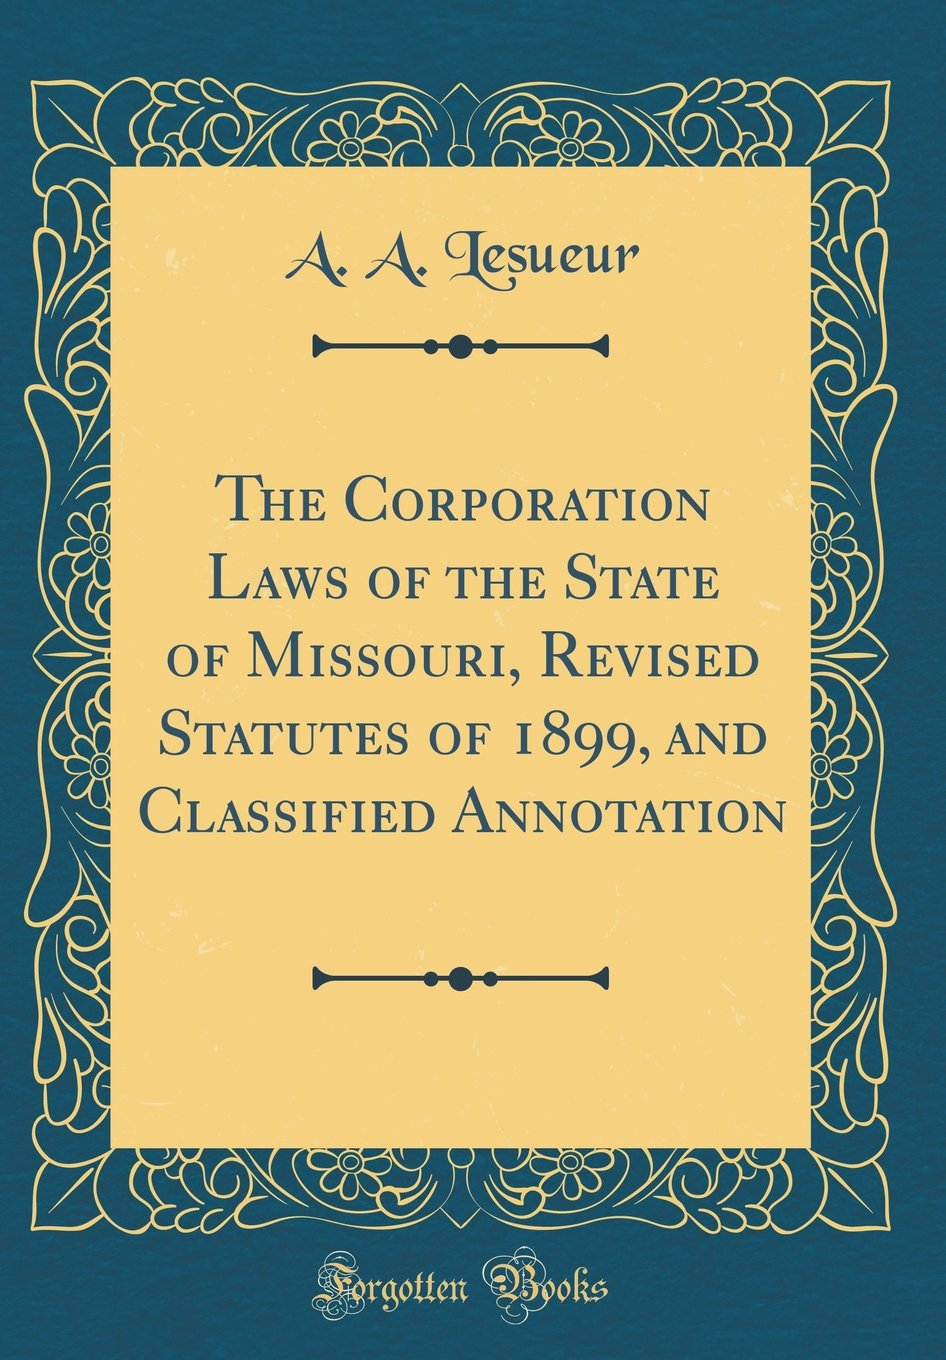 The Corporation Laws of the State of Missouri, Revised